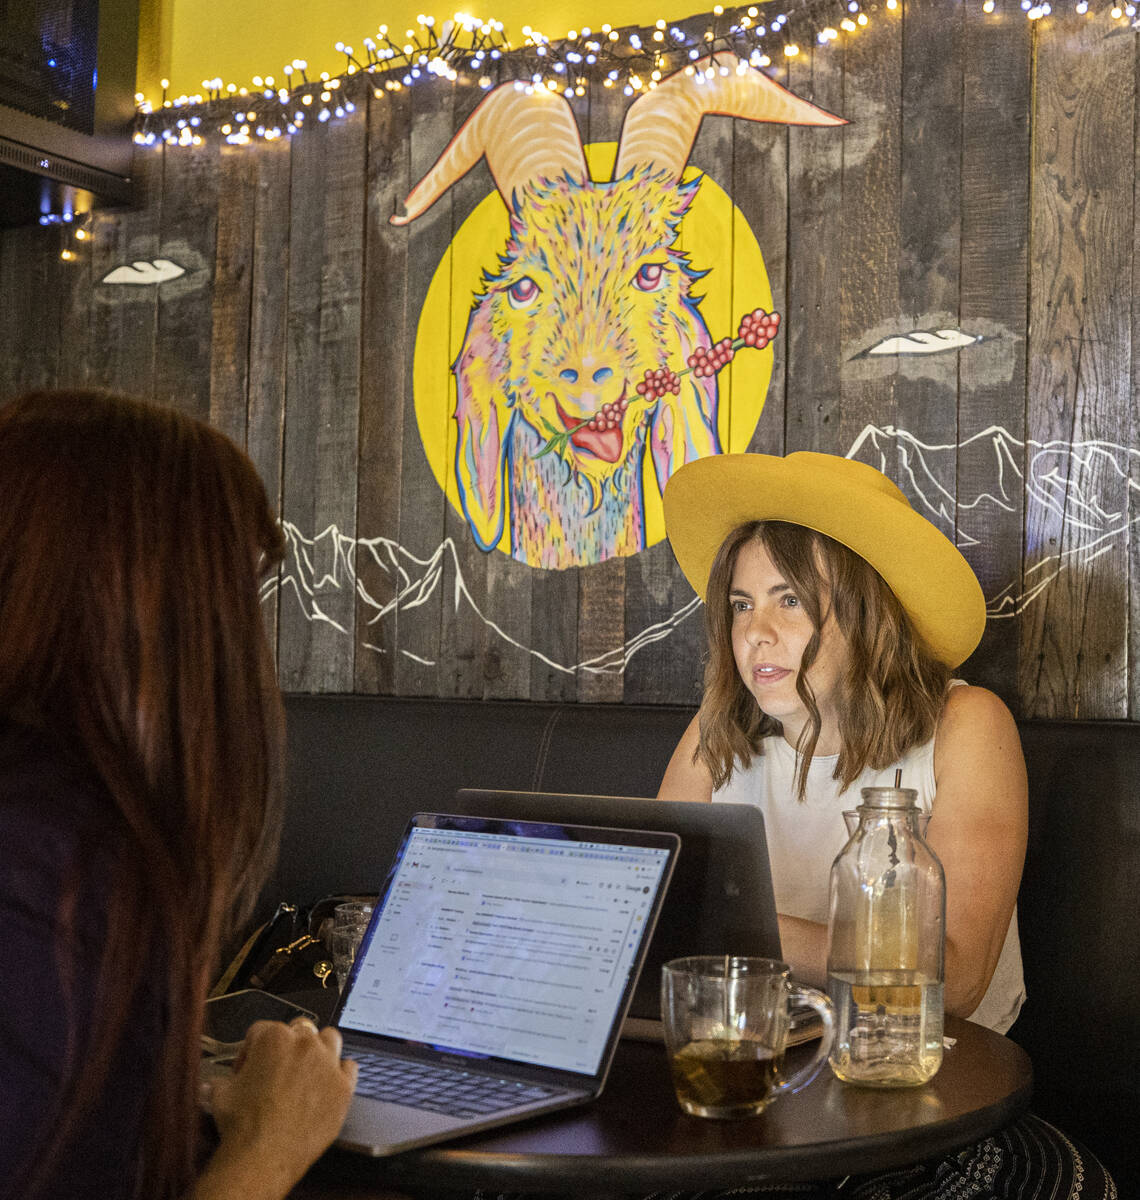 Customers enjoy dinner service at Makers & Finders on Wednesday, Sept. 15, 2021, in Las Veg ...